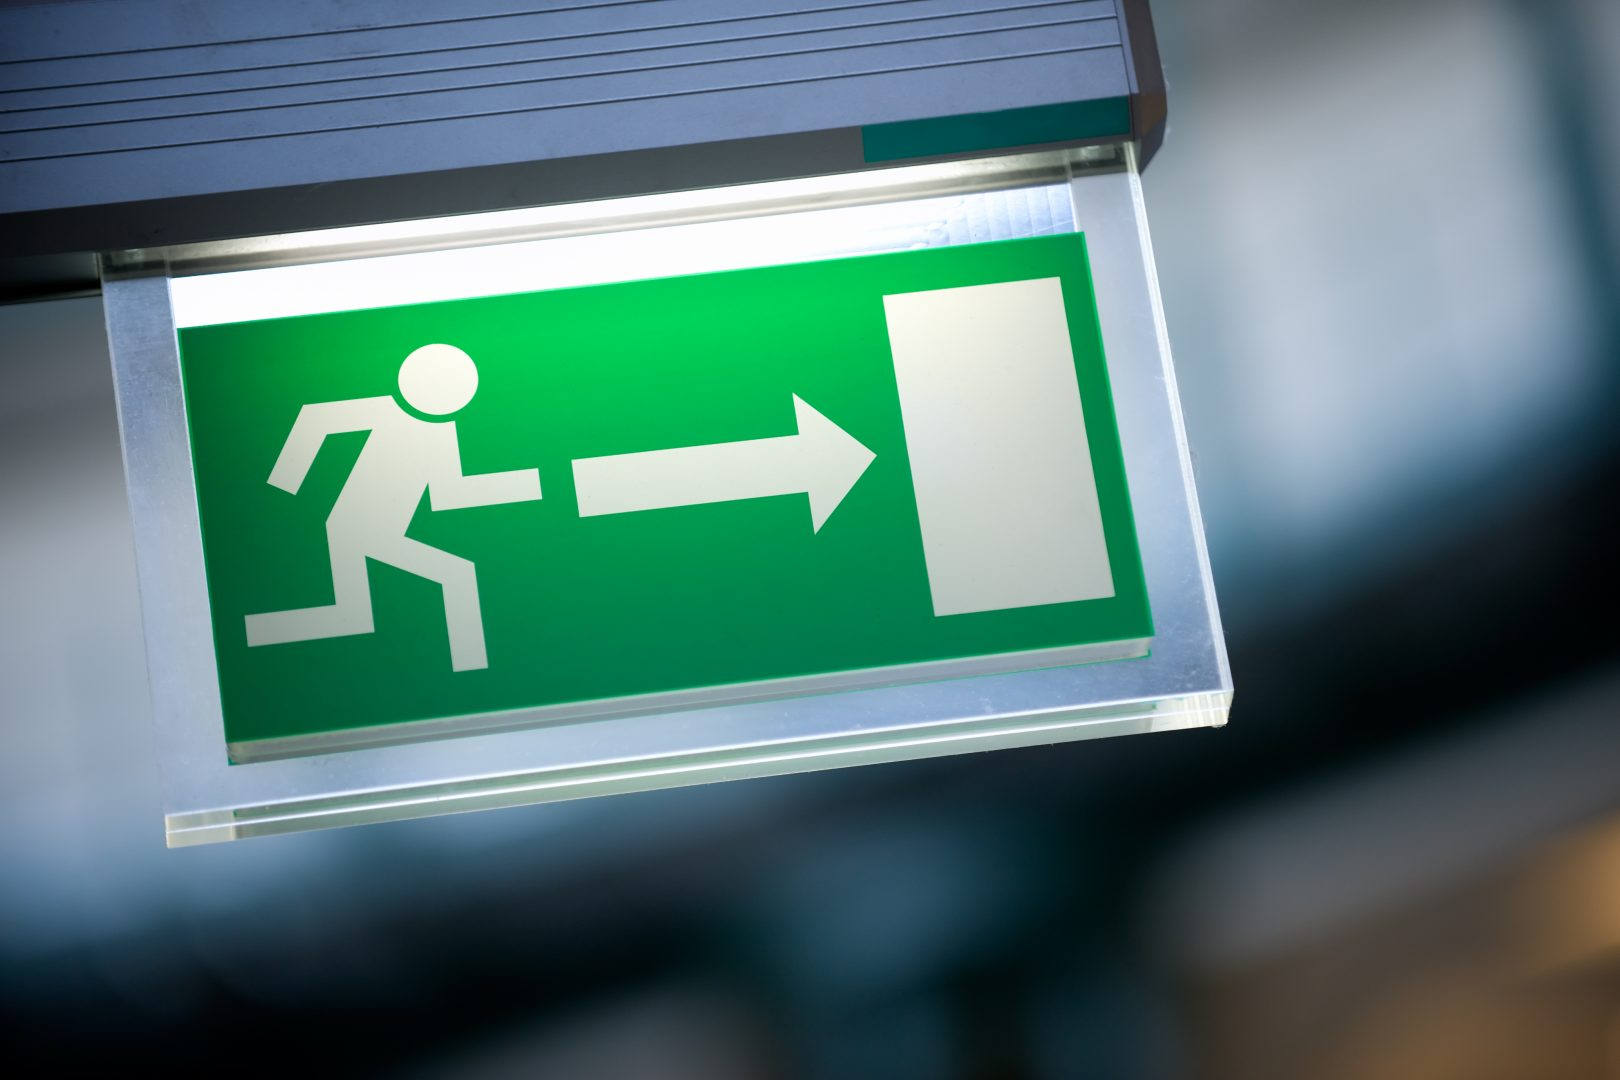 emergency-lighting-exit-sign